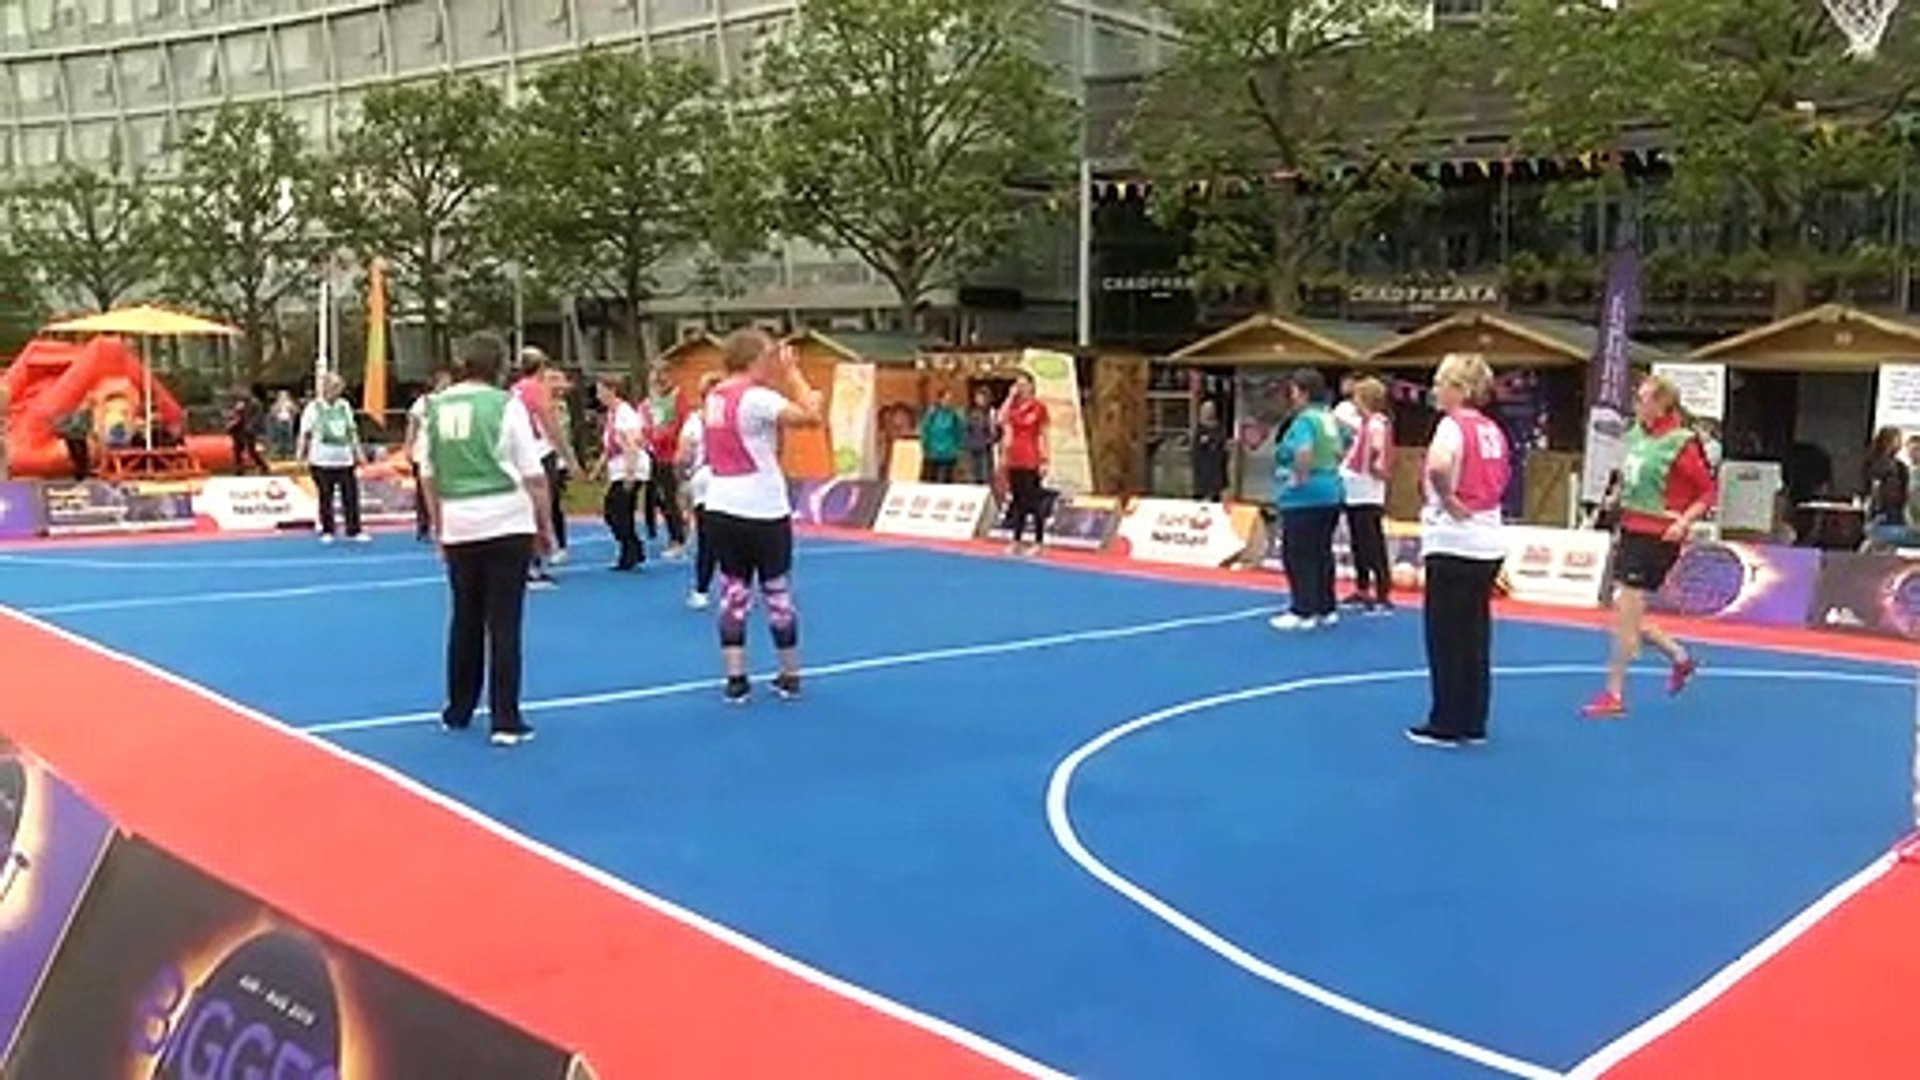 The Netball World Cup In Liverpool!